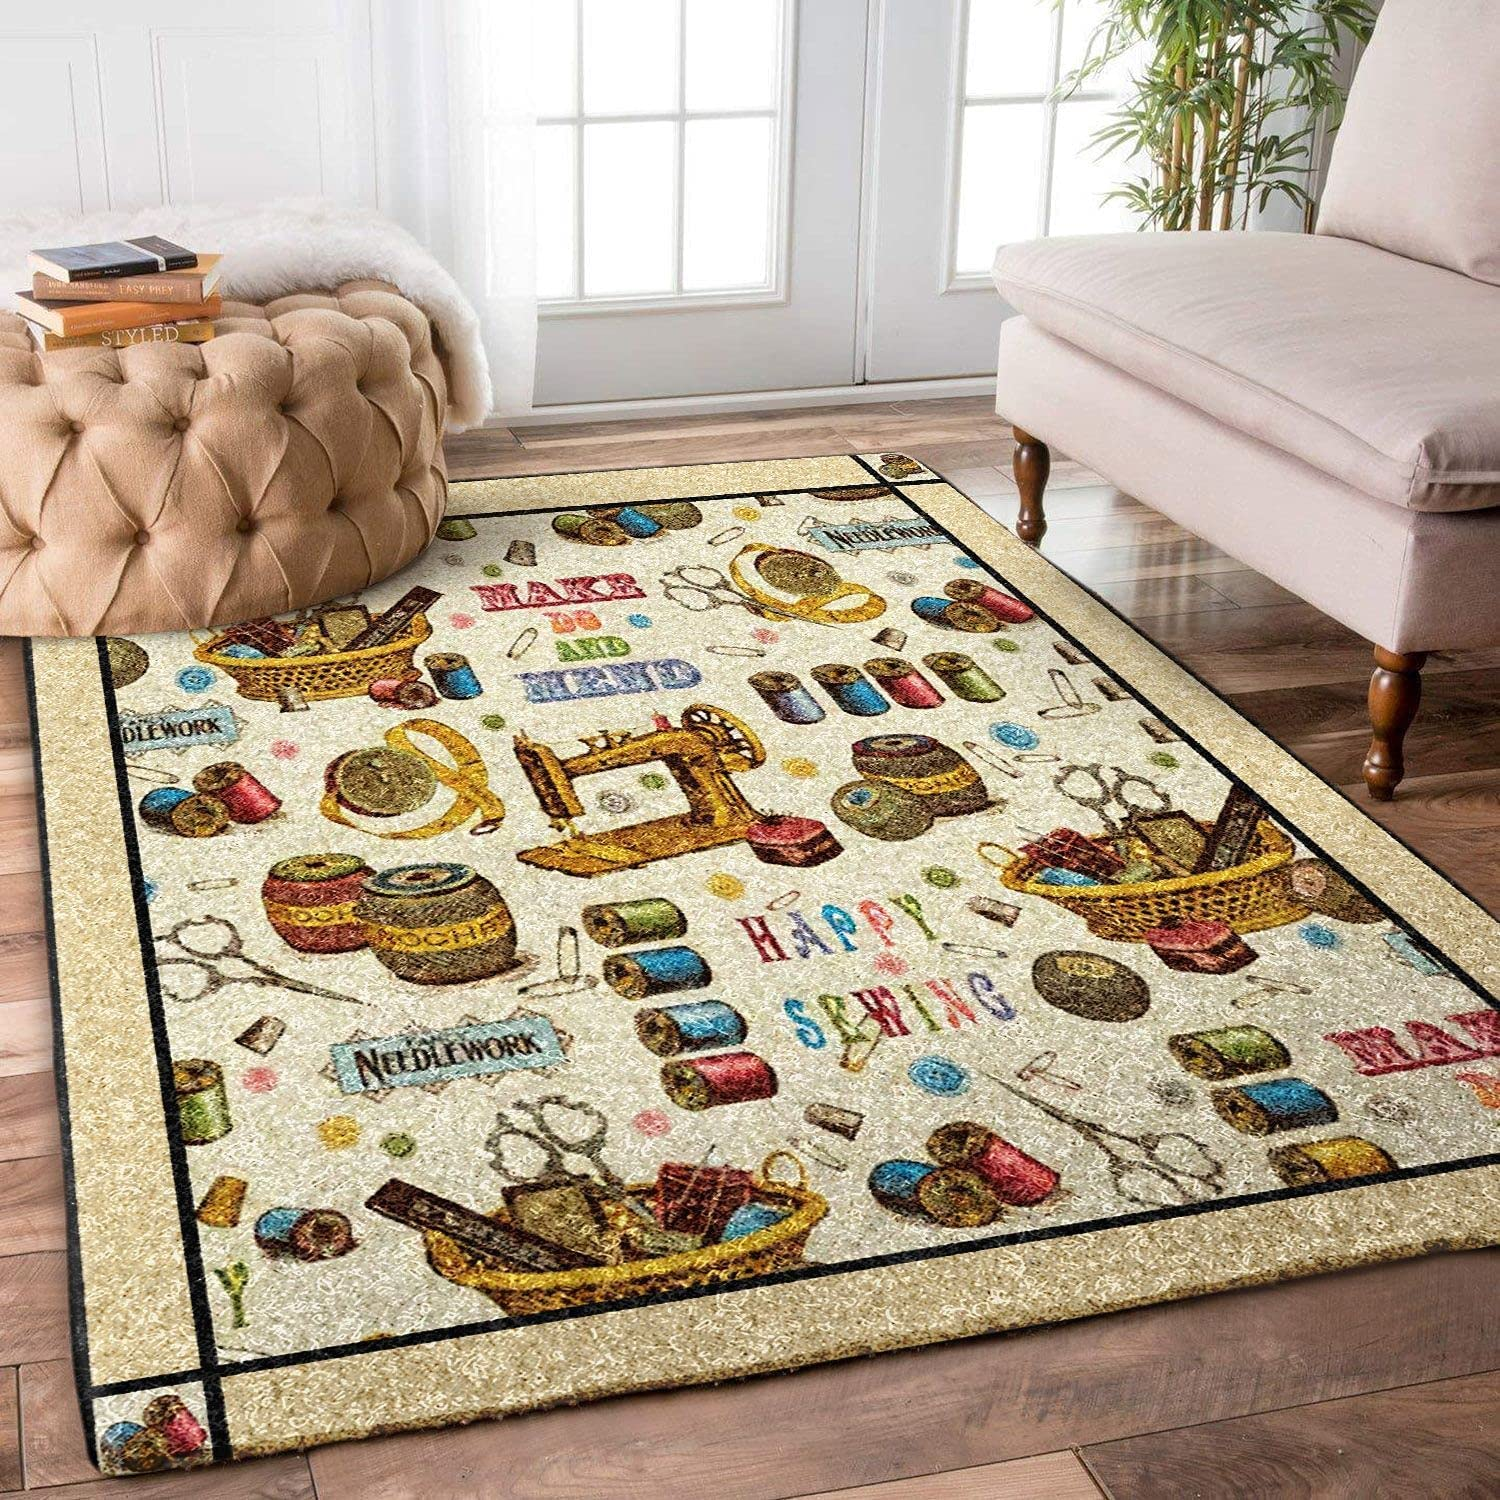 Home Decor Area Rugs Sewing Floor Living Nashville-Davidson Mall Carpet Max 50% OFF Bedroom Room for